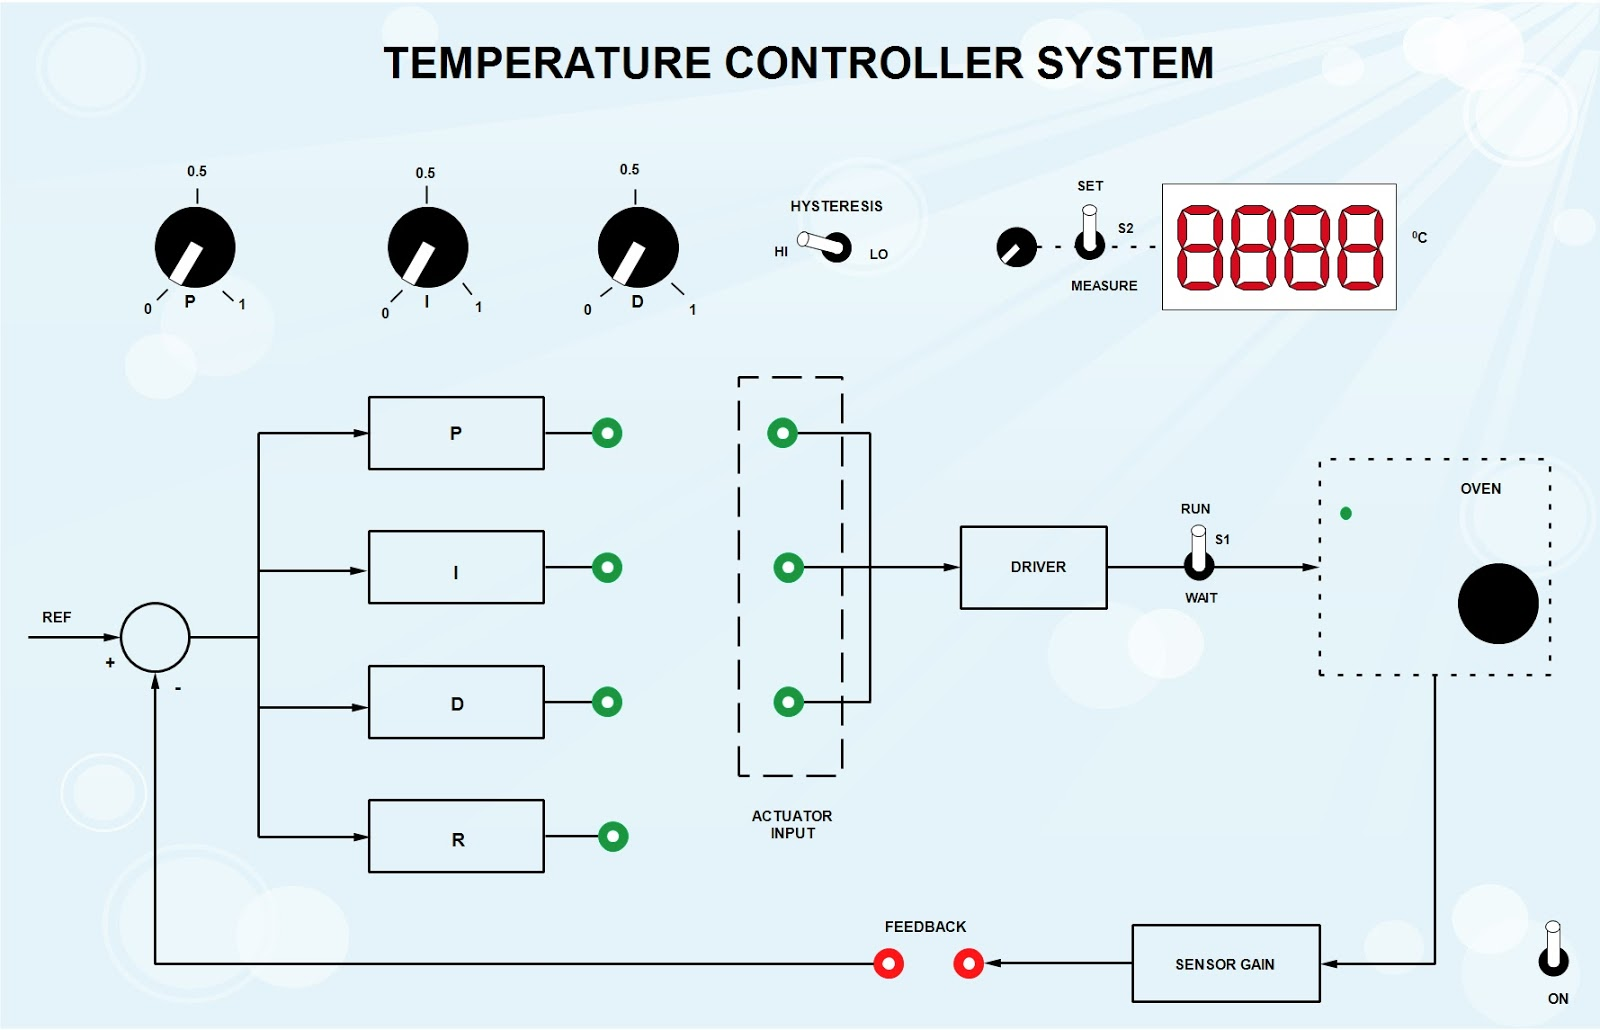 Tech lab temperature control system oven block diagram ccuart Images